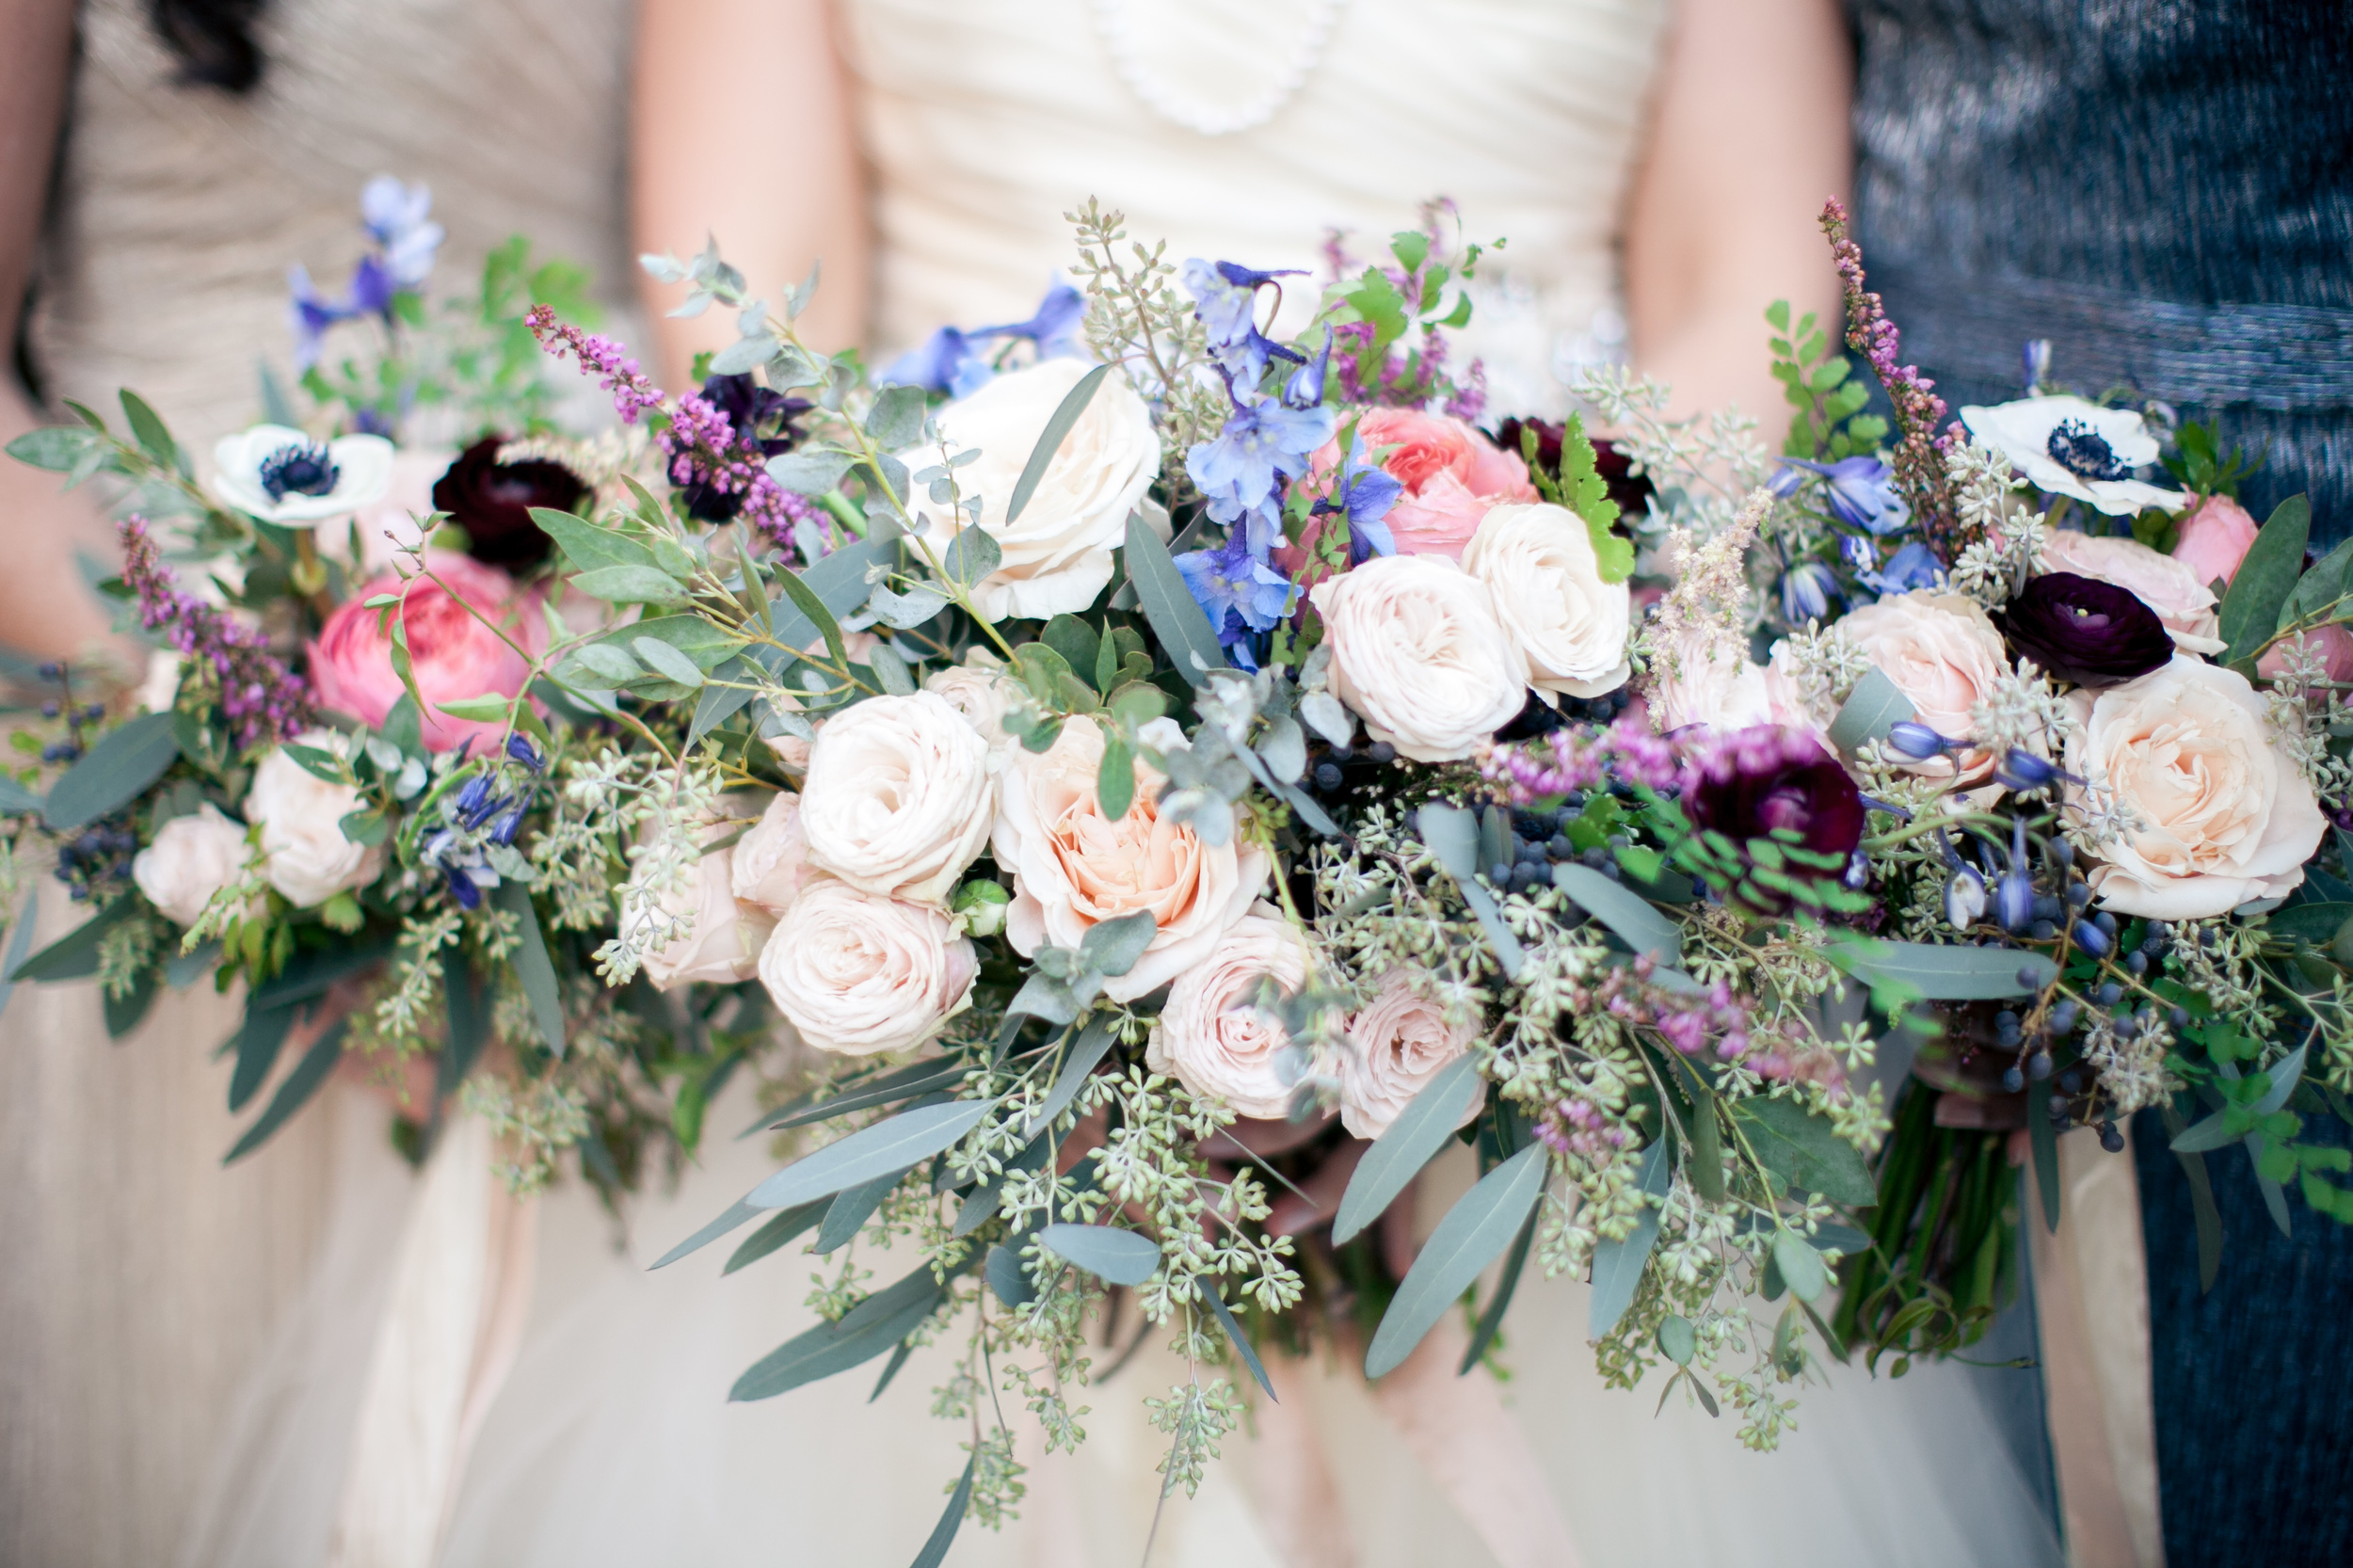 Lush Bouquets with pops of burgundy, rose pink, and blue